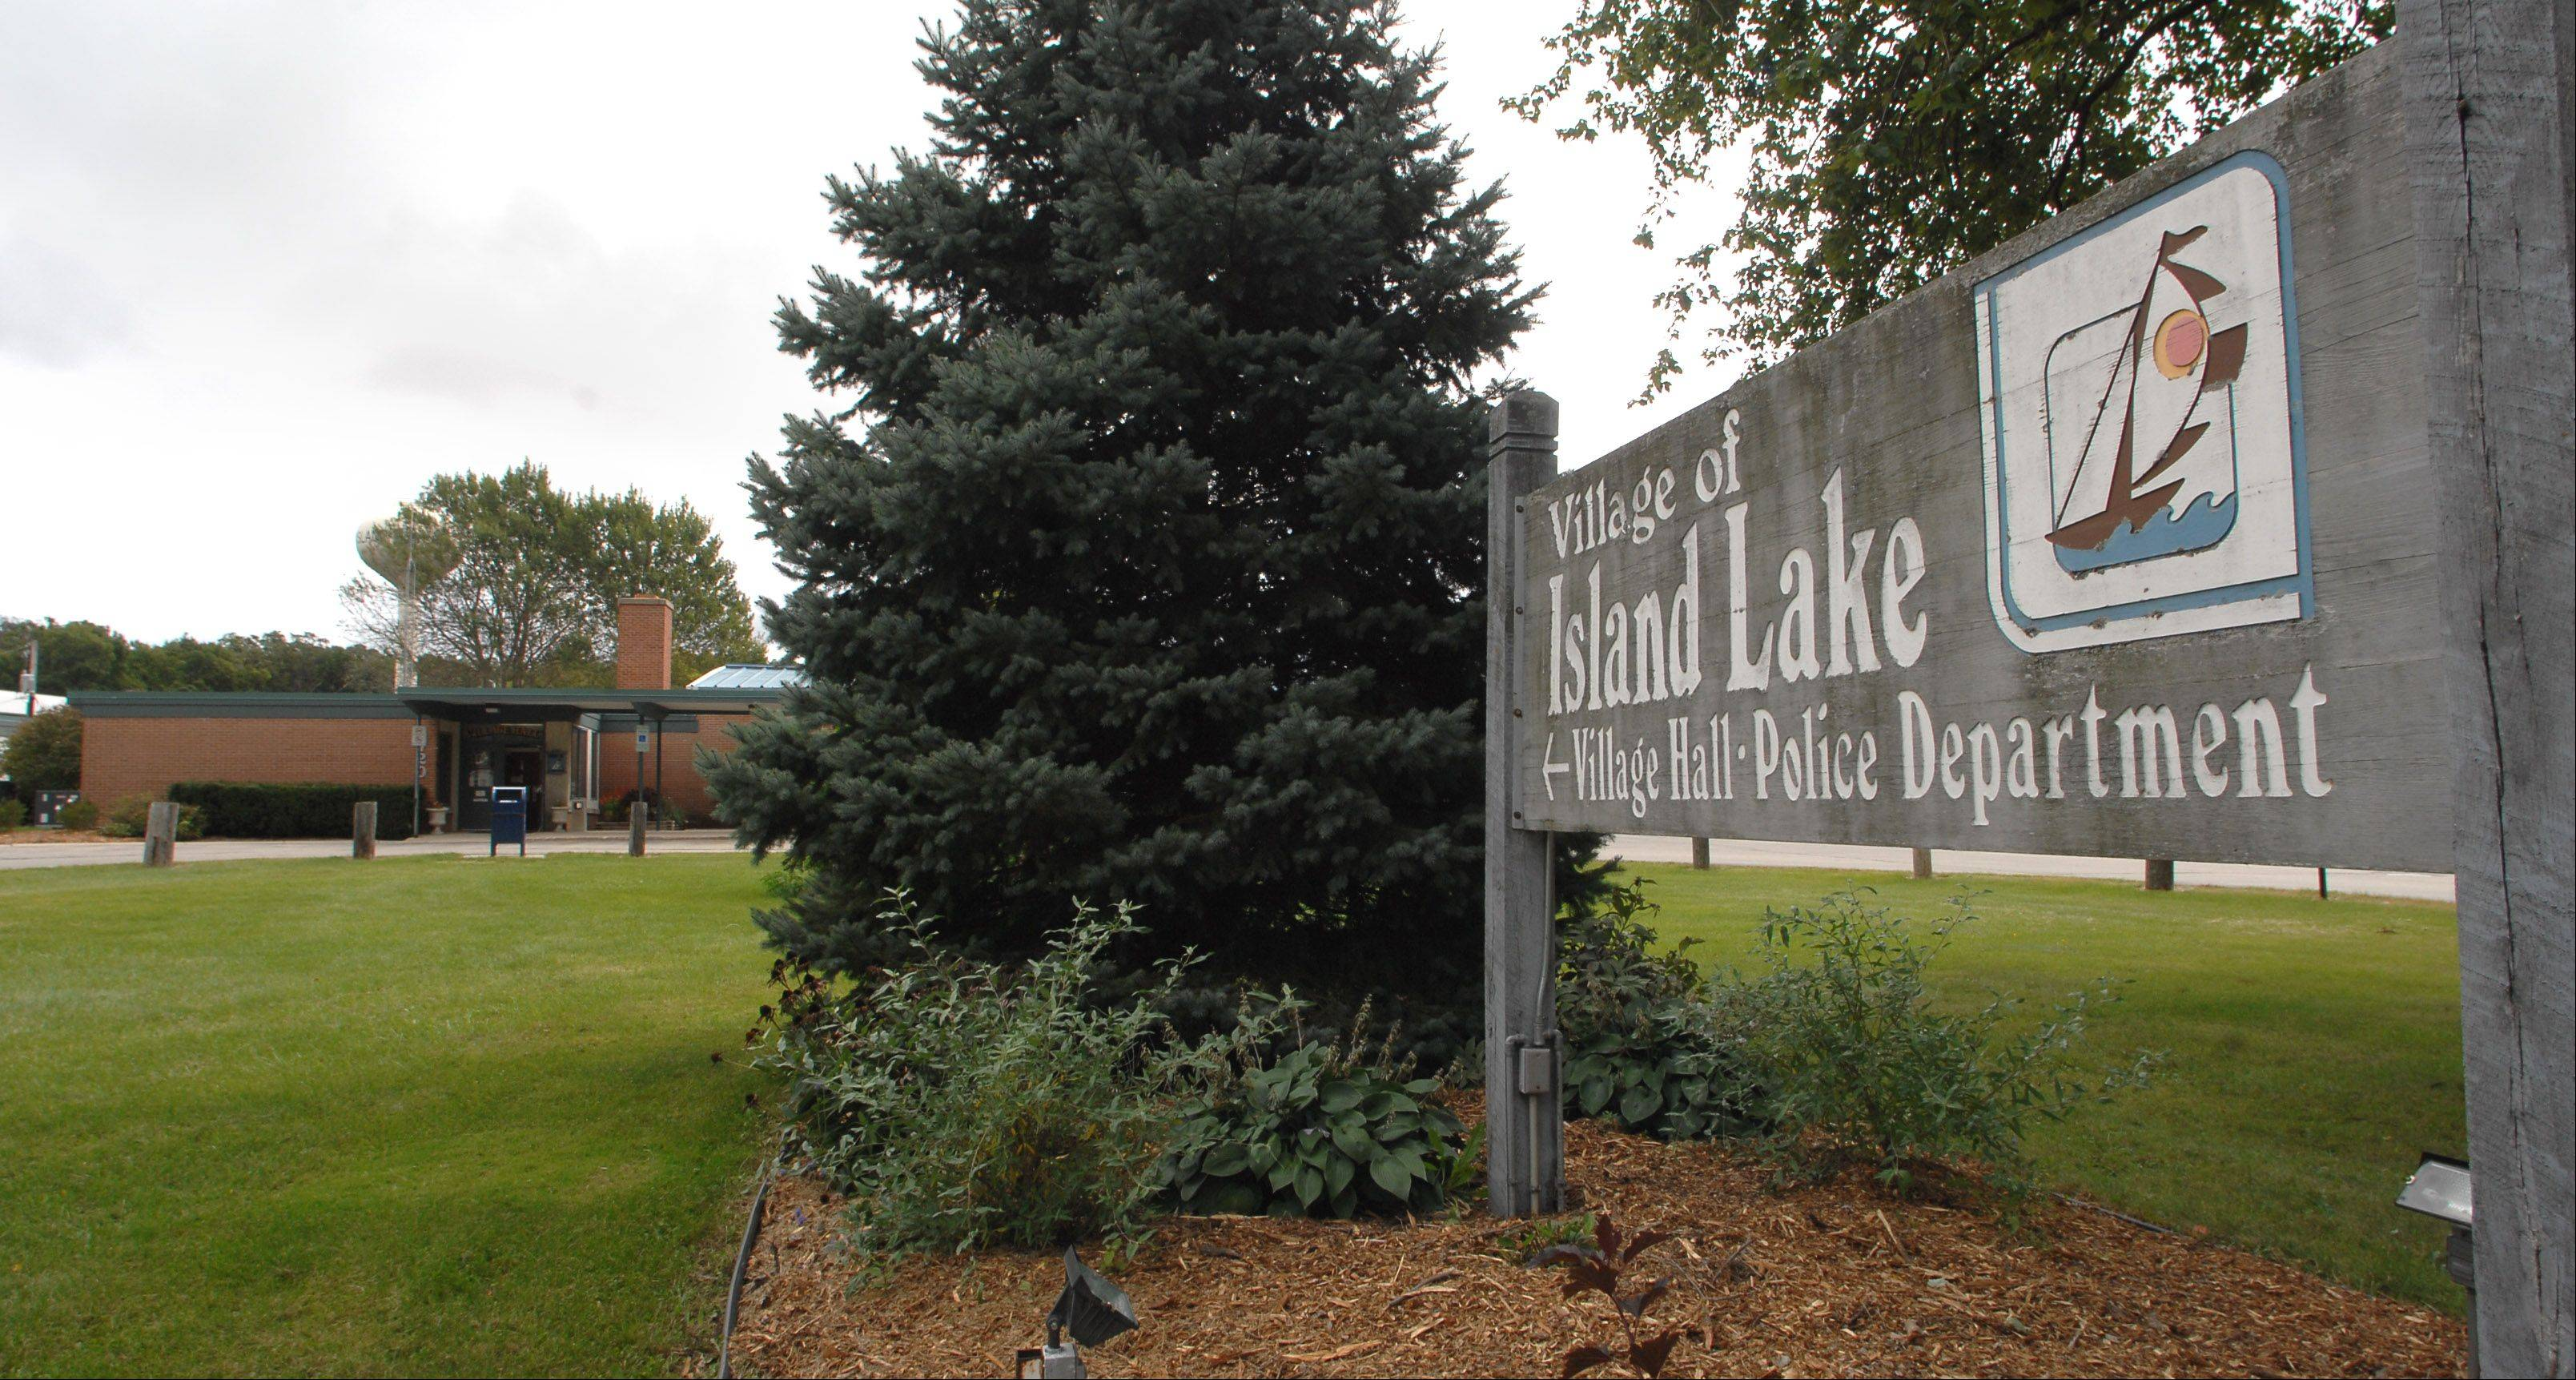 Island Lake's monthly legal bills have decreased since officials settled a high-profile lawsuit last year, but they're still higher than they used to be.